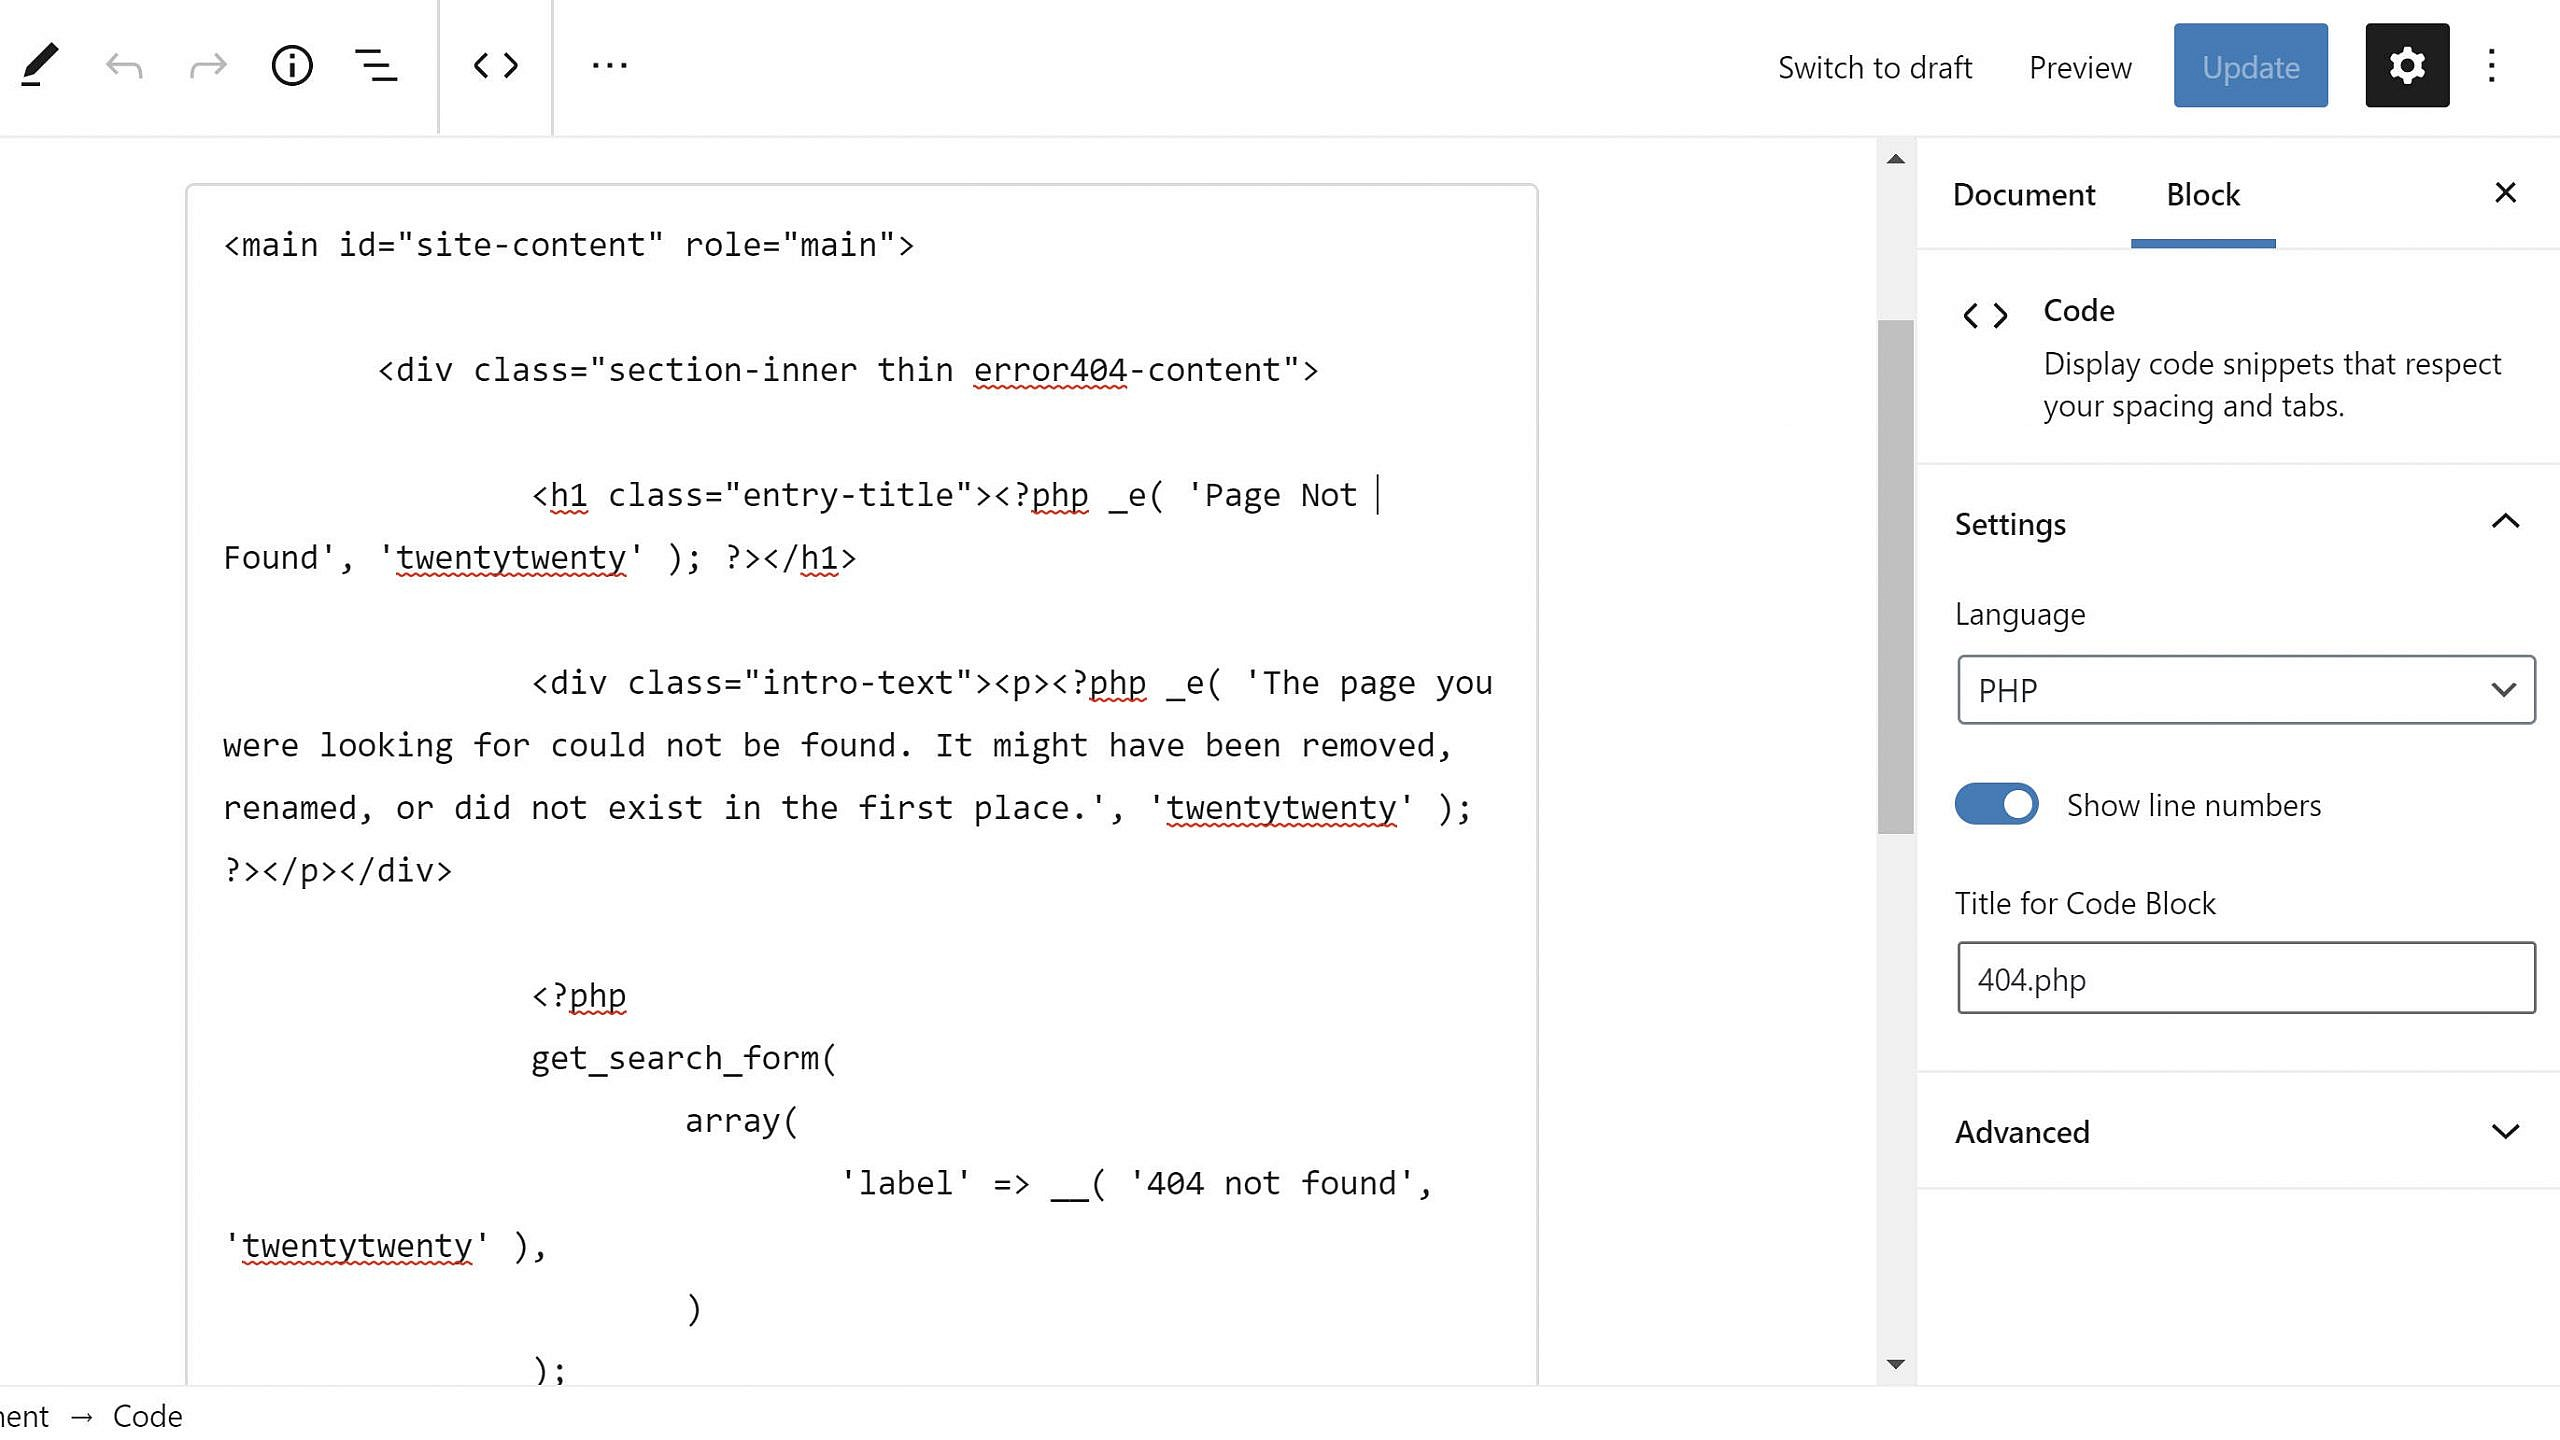 Using the Code Syntax Highlighter options in the block editor.